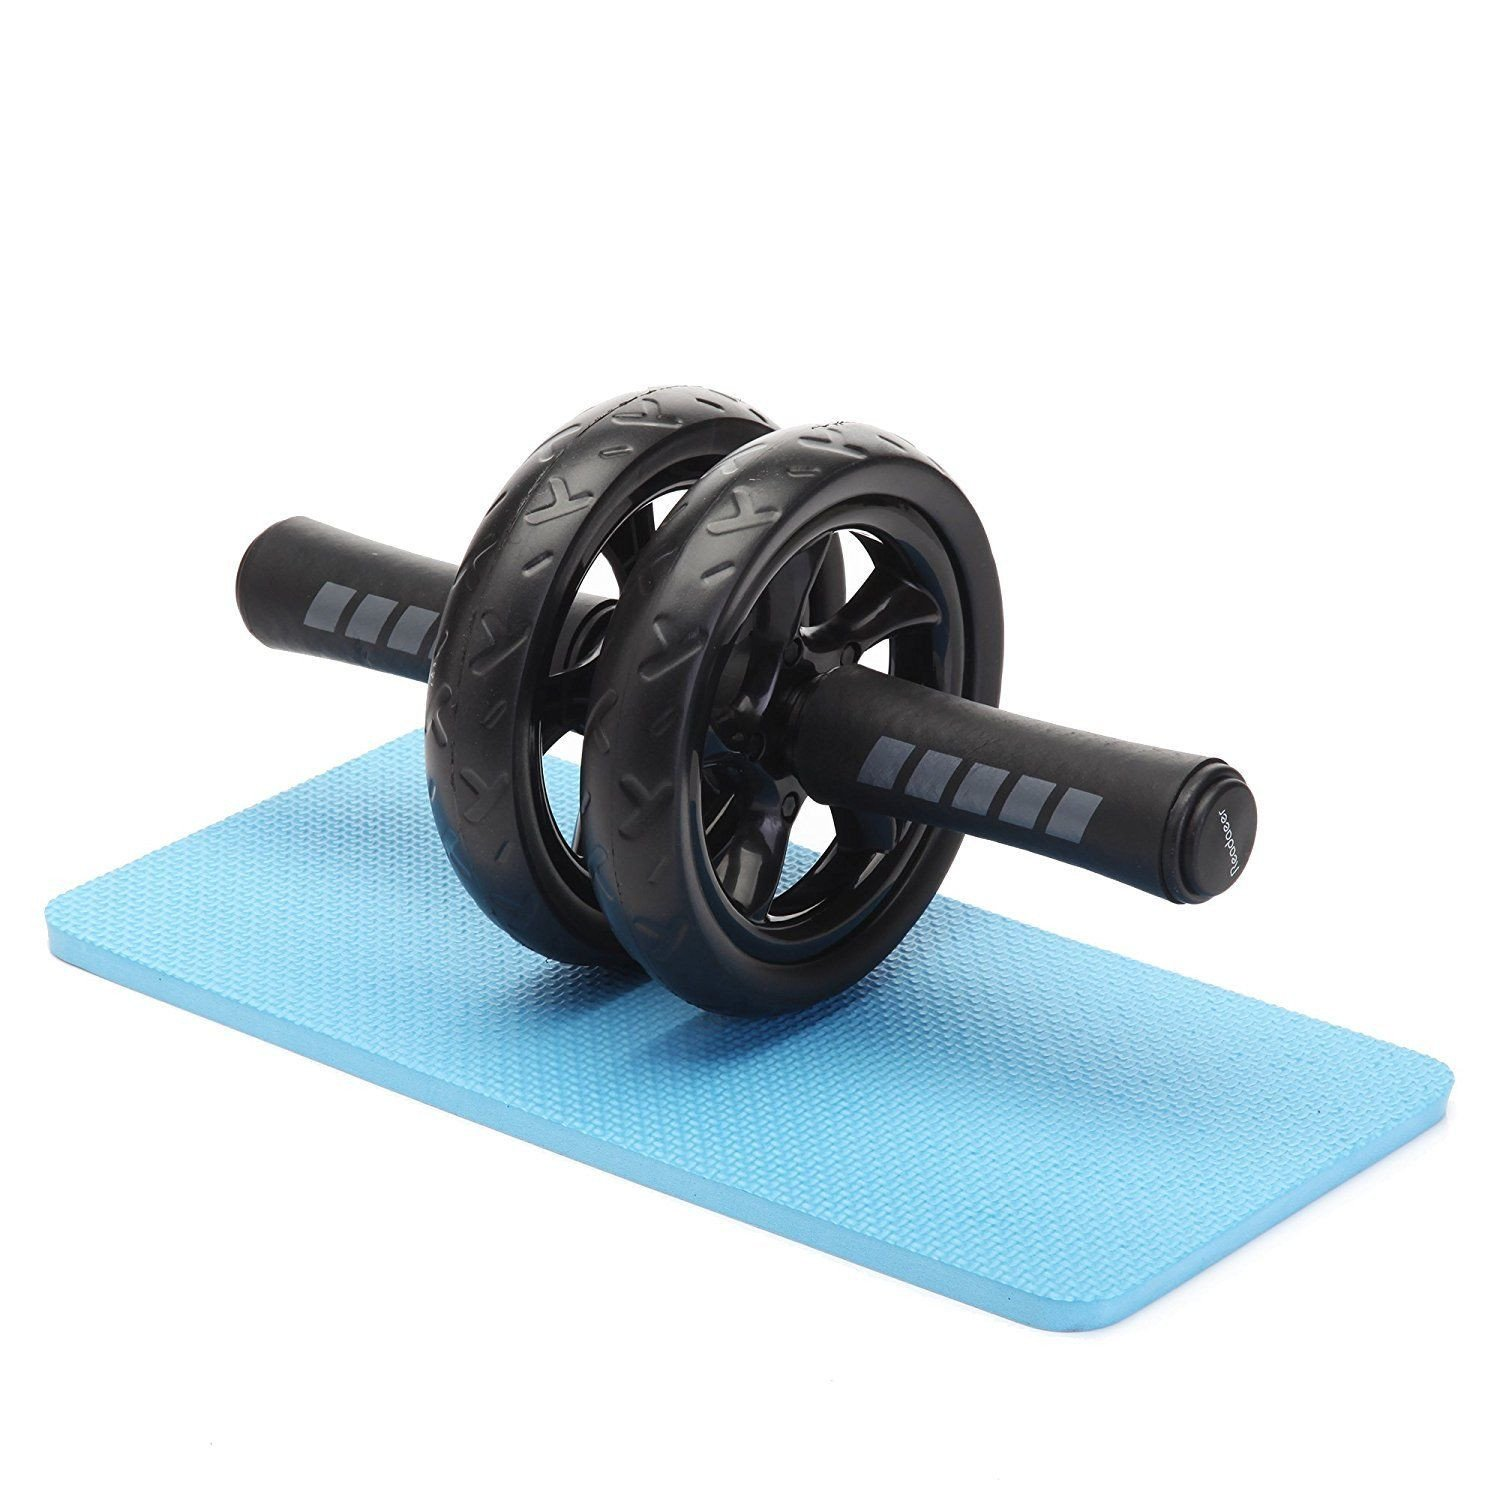 Roller Wheel Speed Abdominal fitness equipment Workout well and mat by